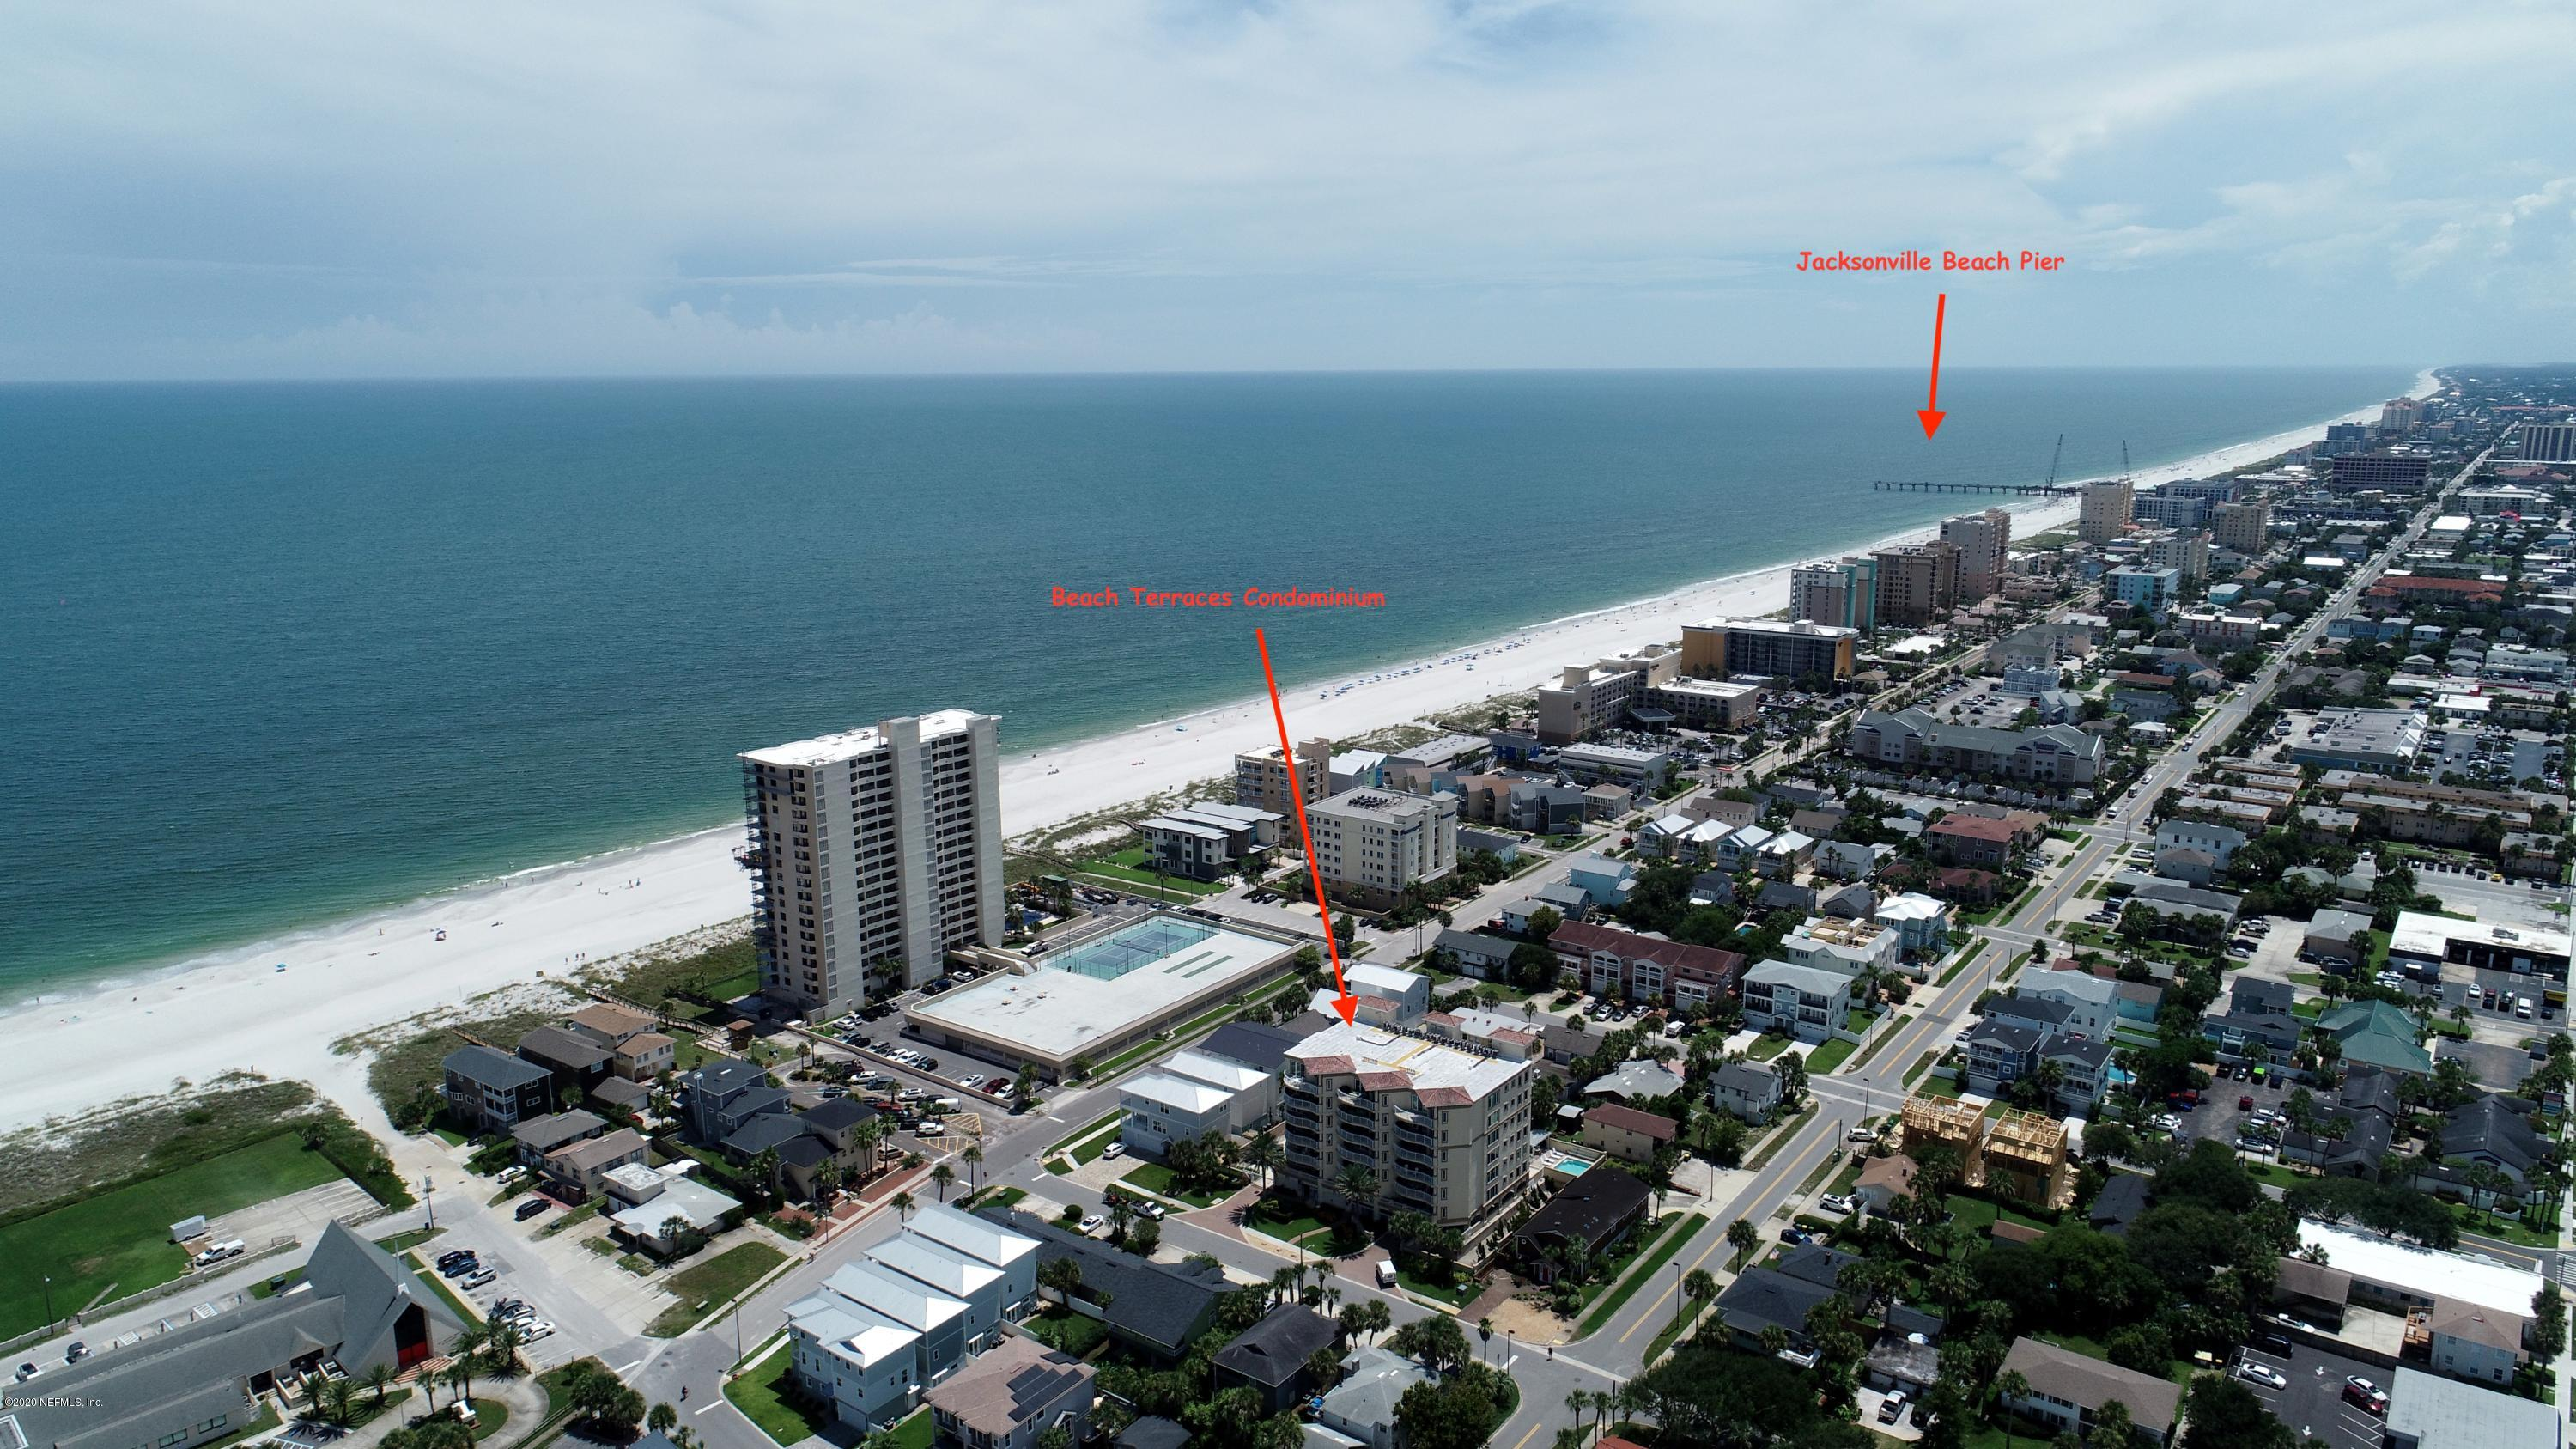 Property for sale at 116 19TH AVE N # 203, Jacksonville Beach,  Florida 32250